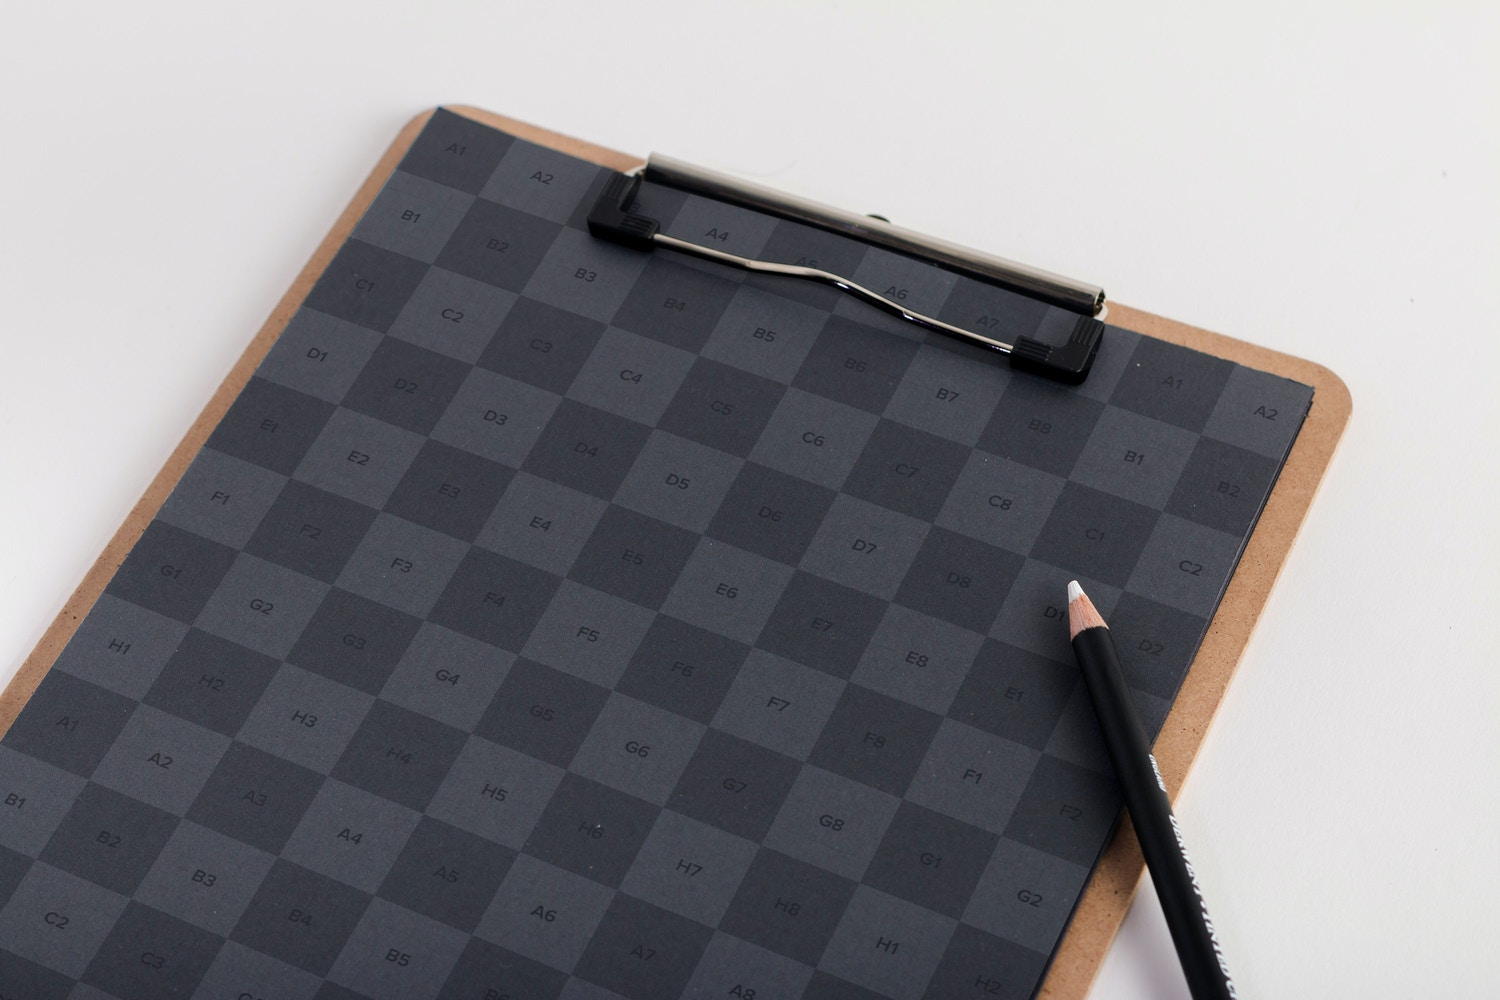 A4 Clipboard Mockup (2) by Original Mockups on Original Mockups